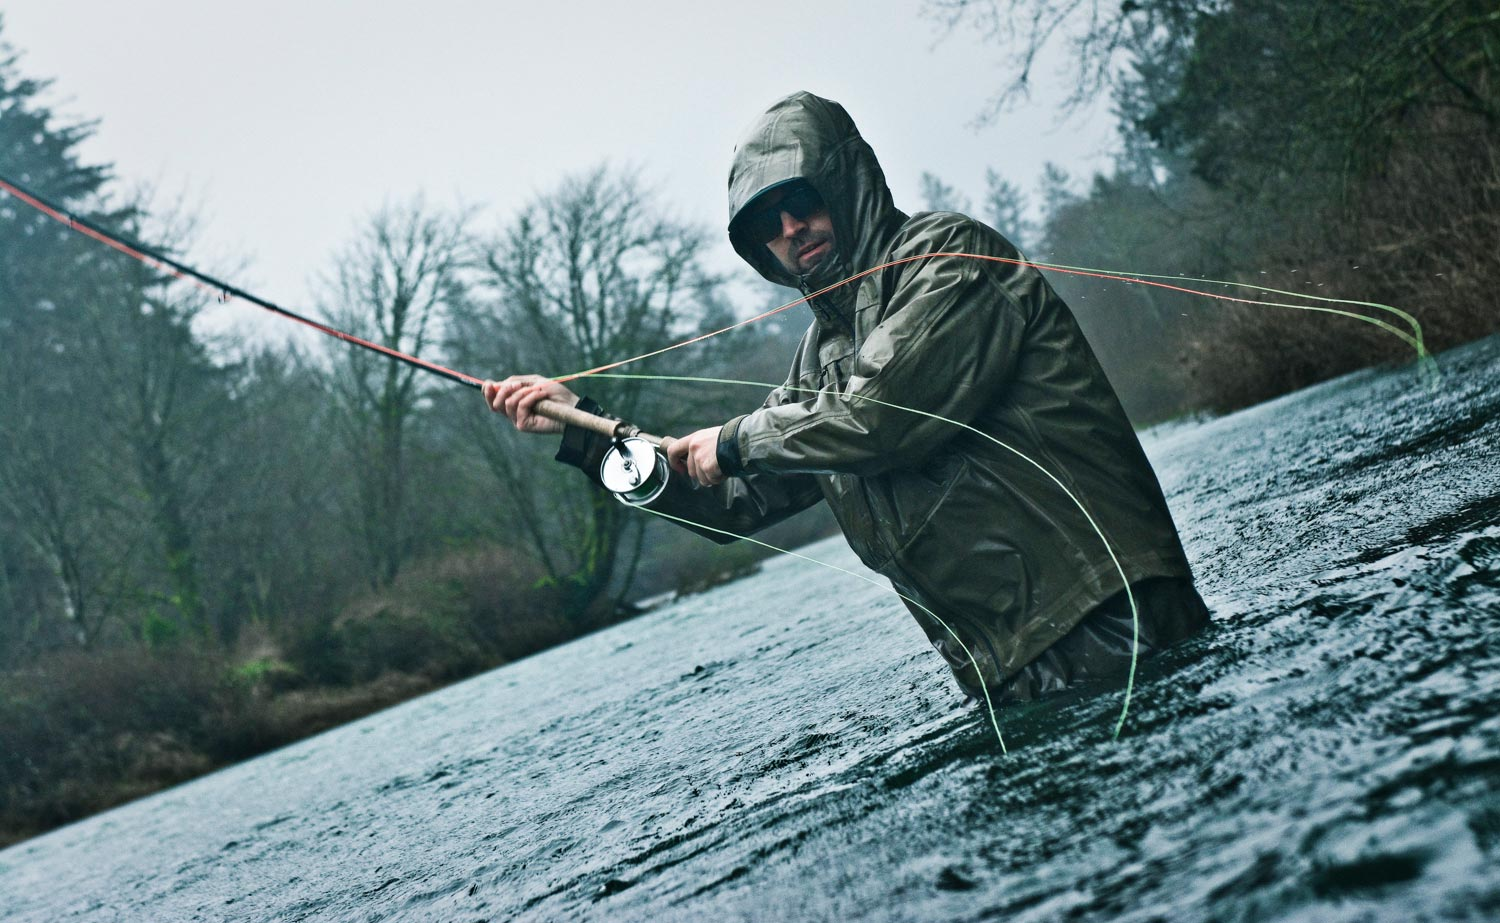 Hickman casting in the gale. Photo Louis Cahill